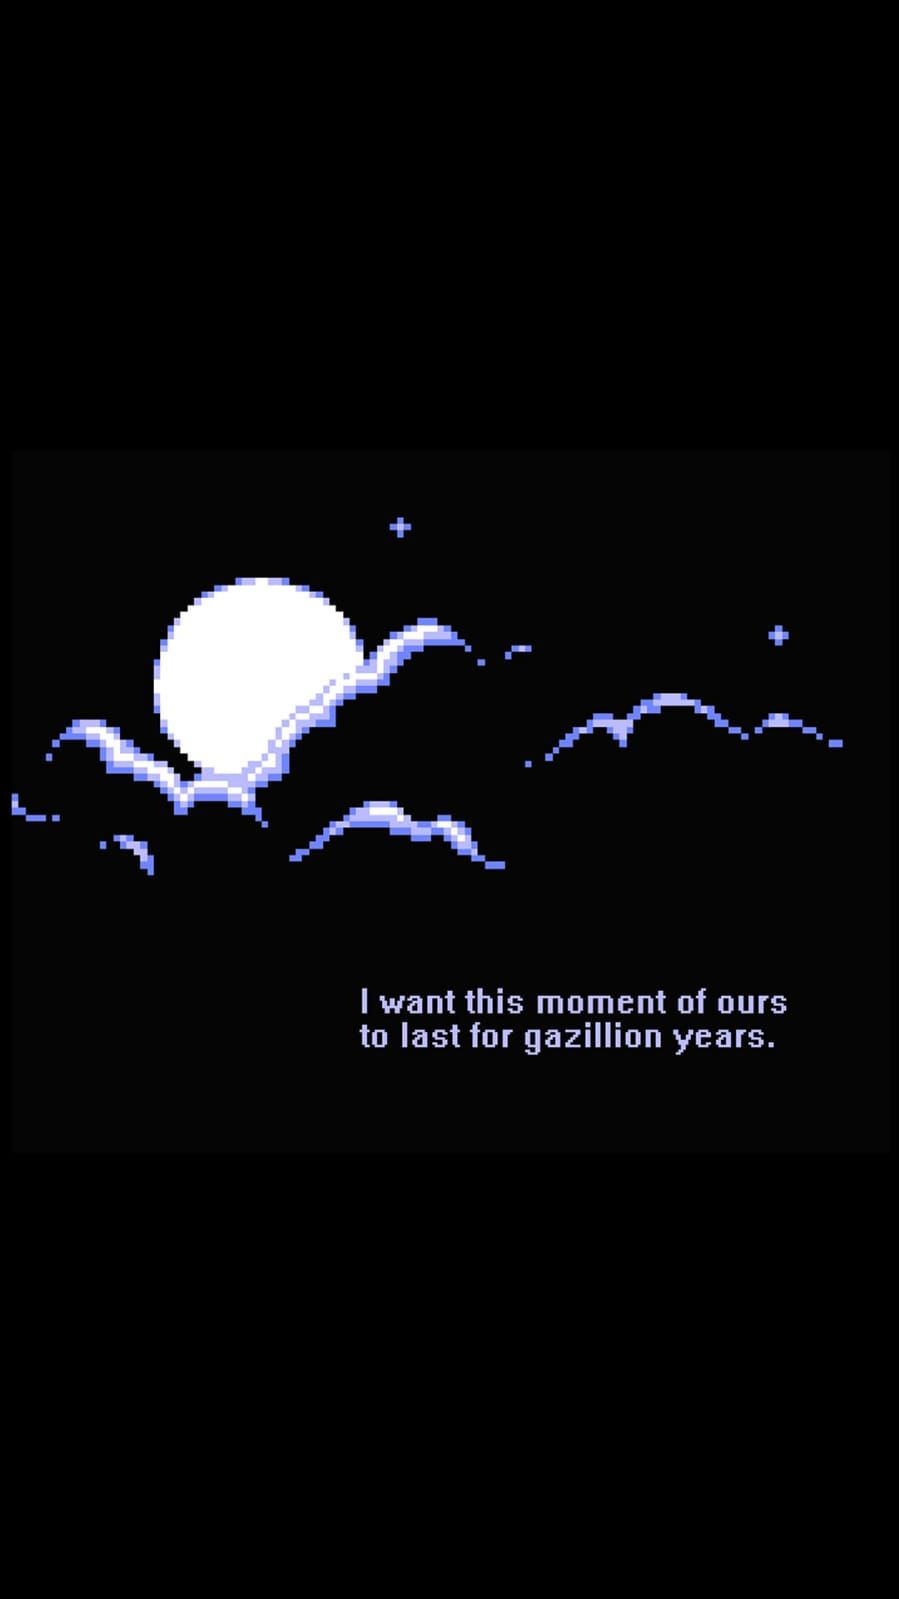 Pin By Sarah Smith On Backgrounds Wallpapers Aesthetic Words Pixel Art Quote Aesthetic